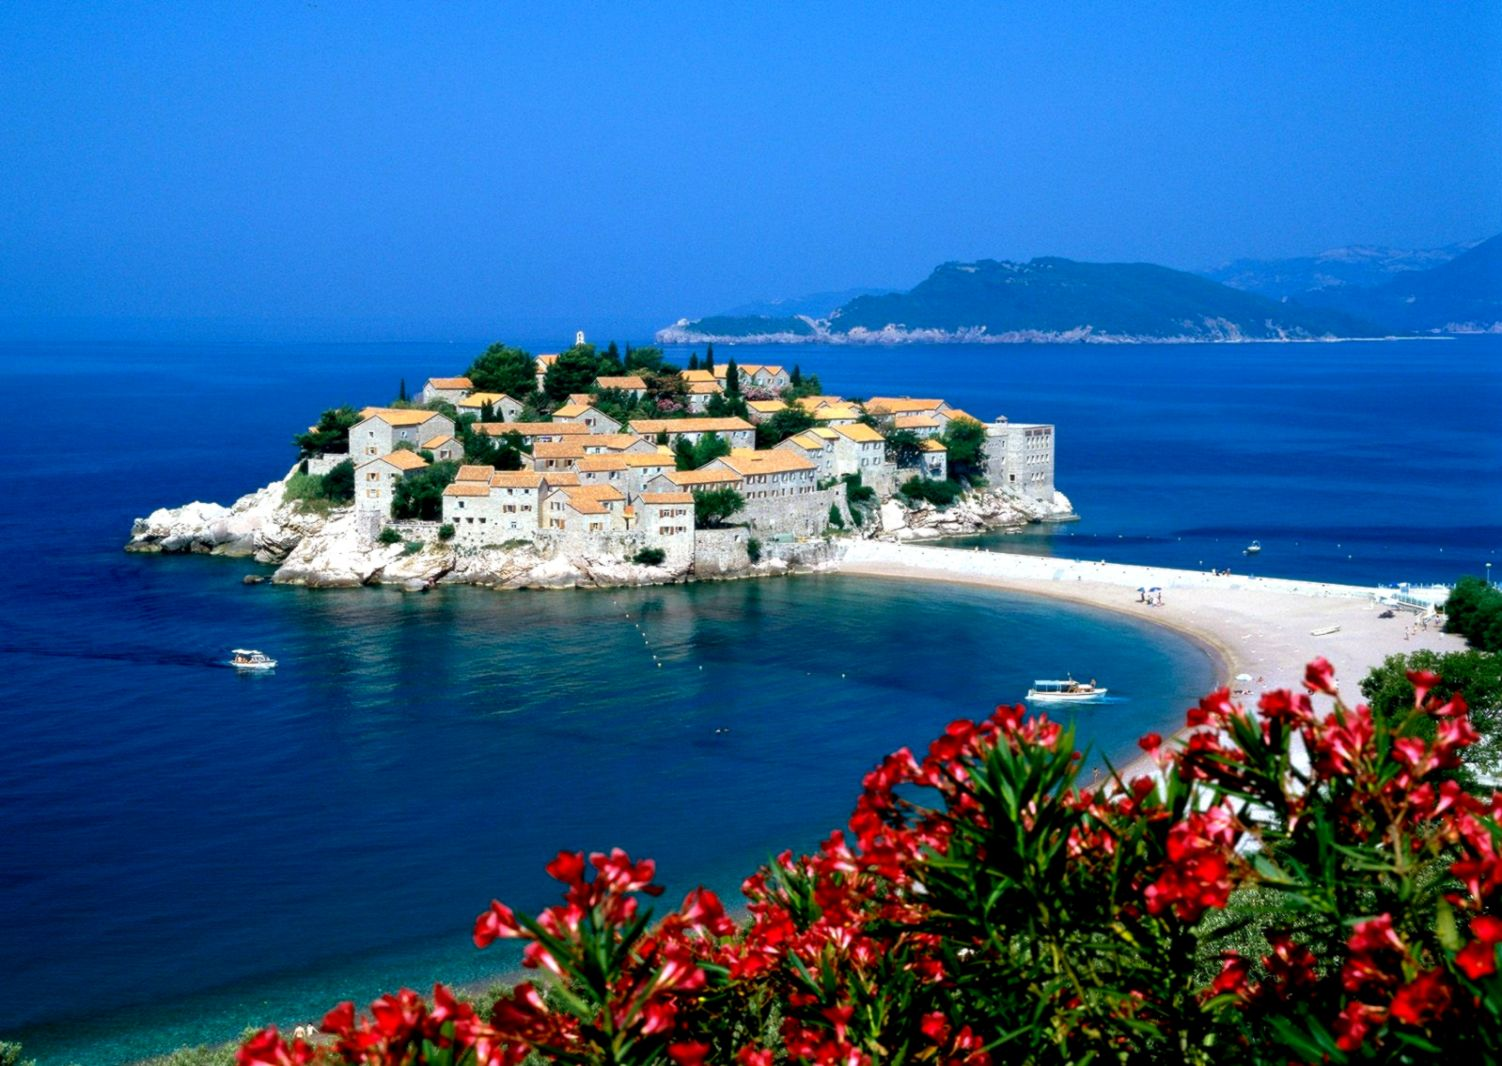 sveti-stefan-serbia-and-montenegro-wallpaper-and-background-image.jpg